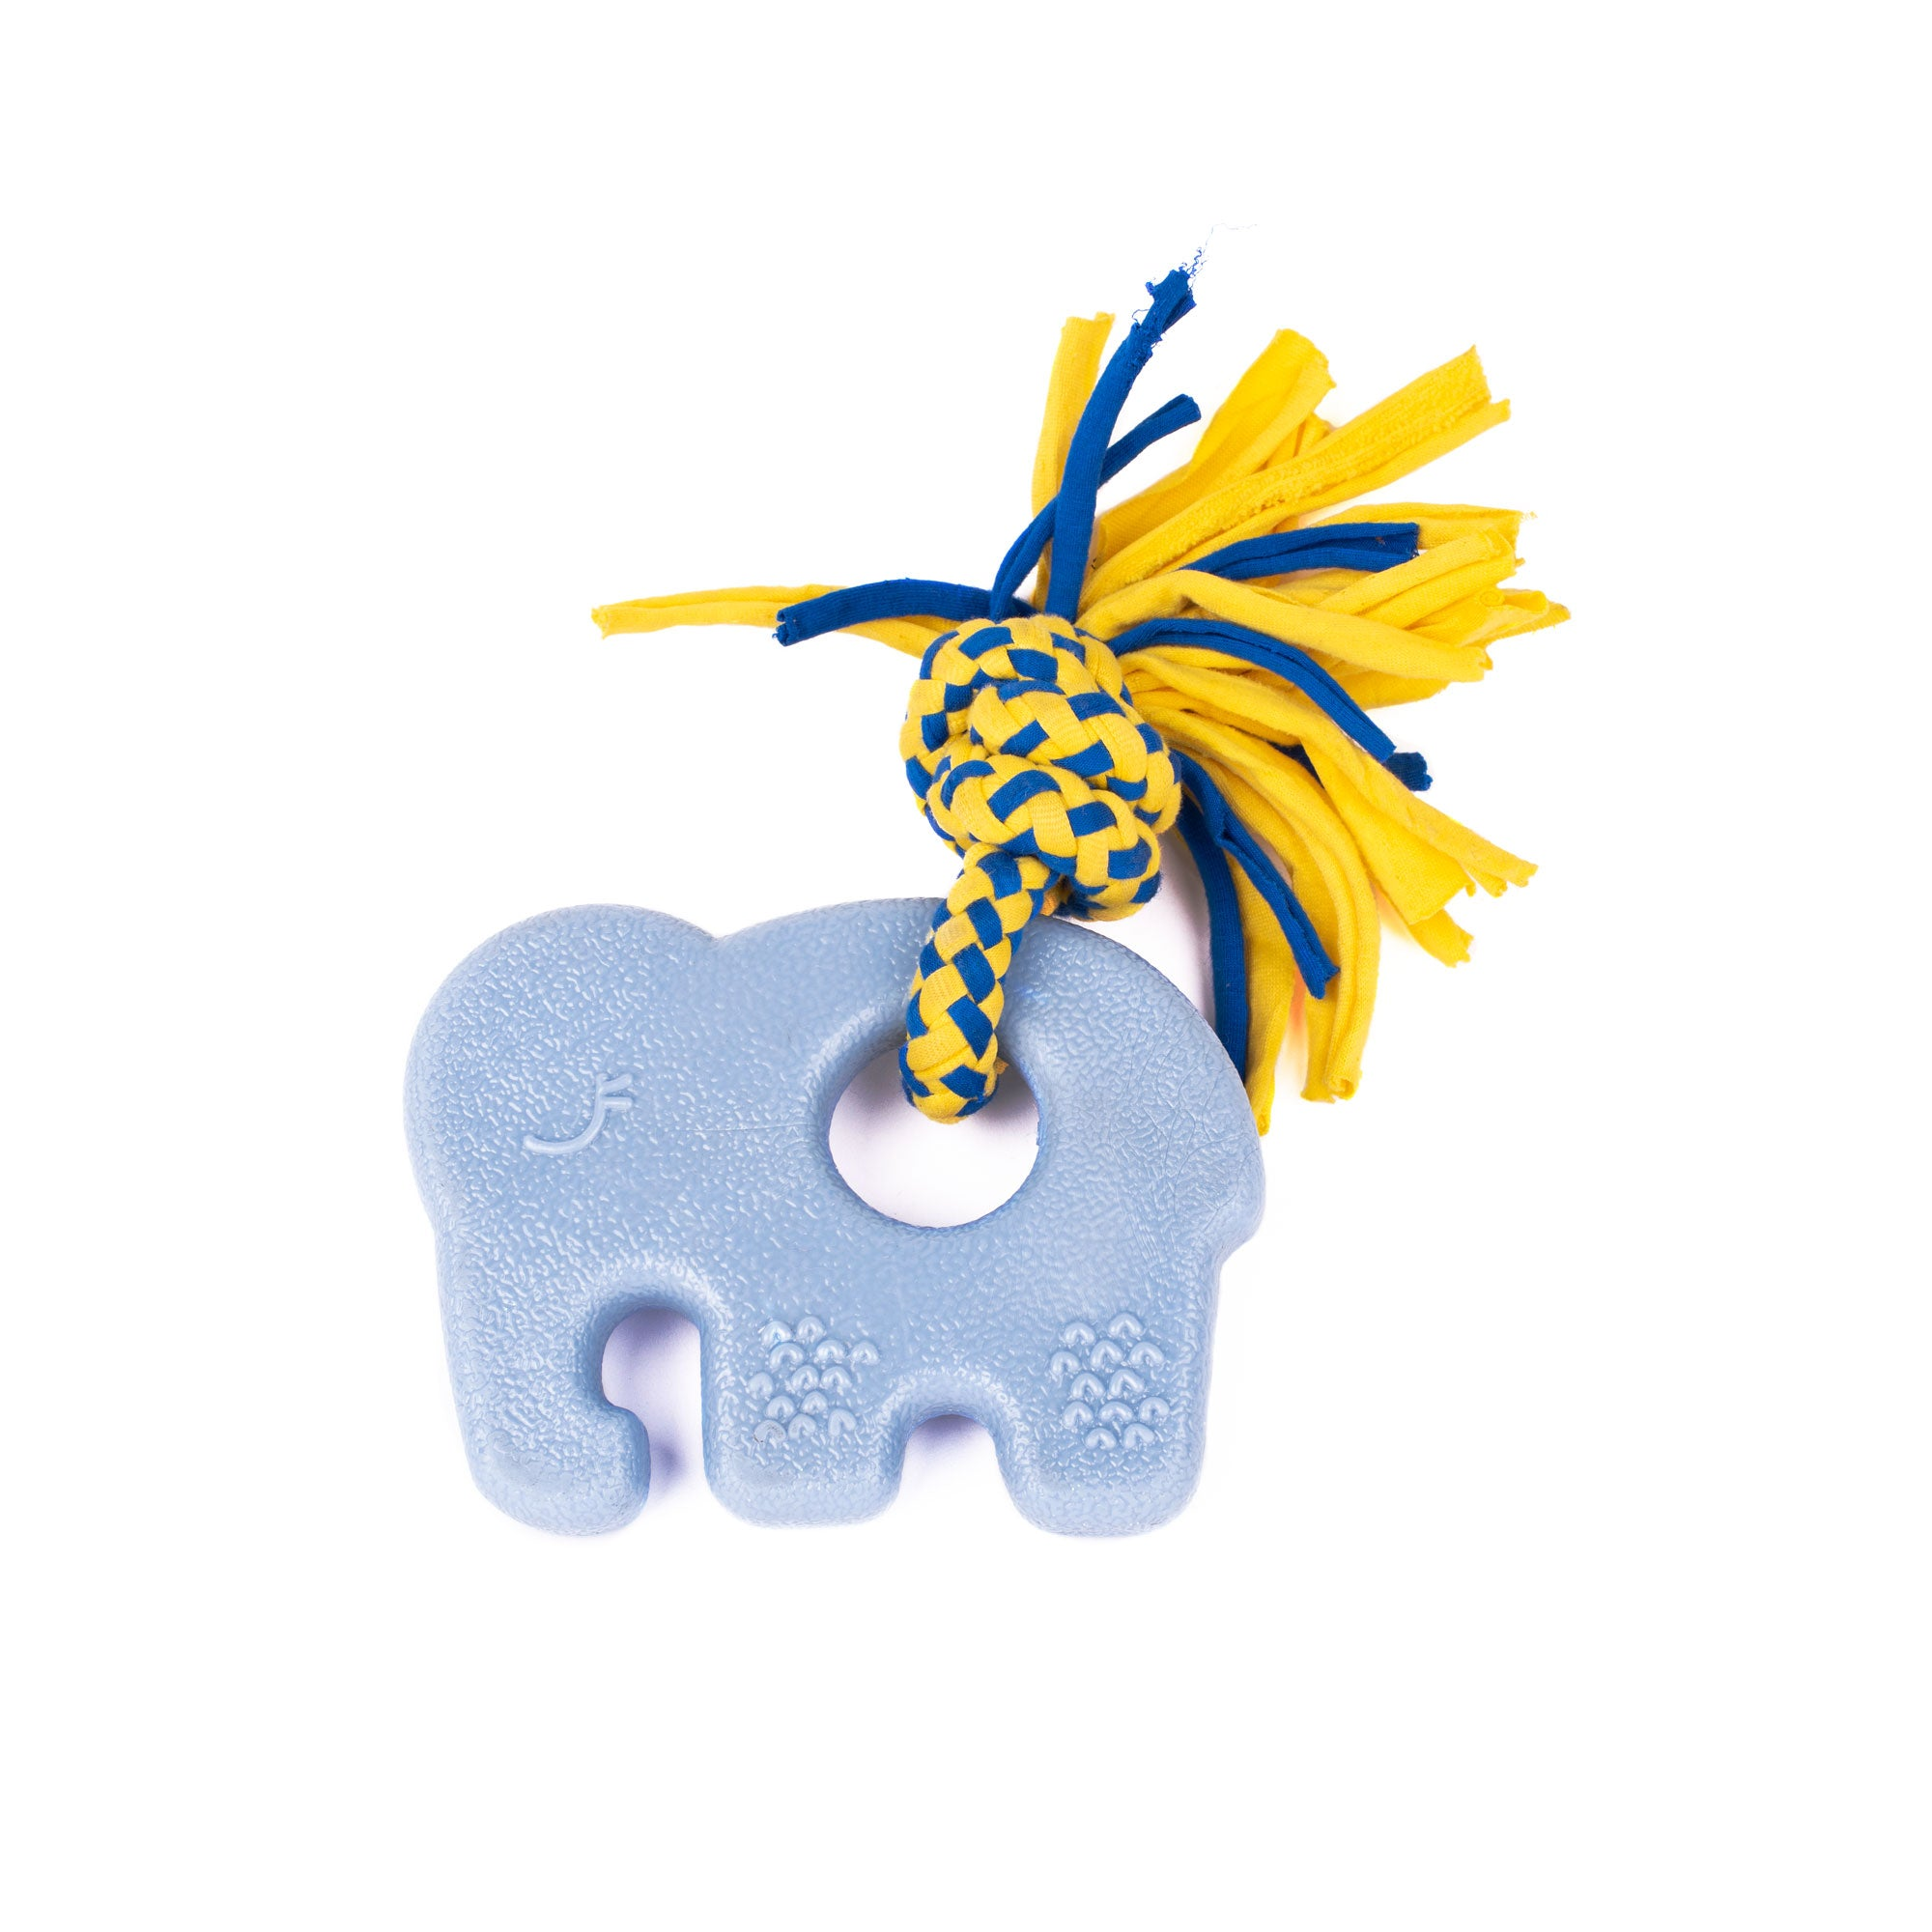 Zippy Paws Tuff Teether Blue Elephant Dog Toy